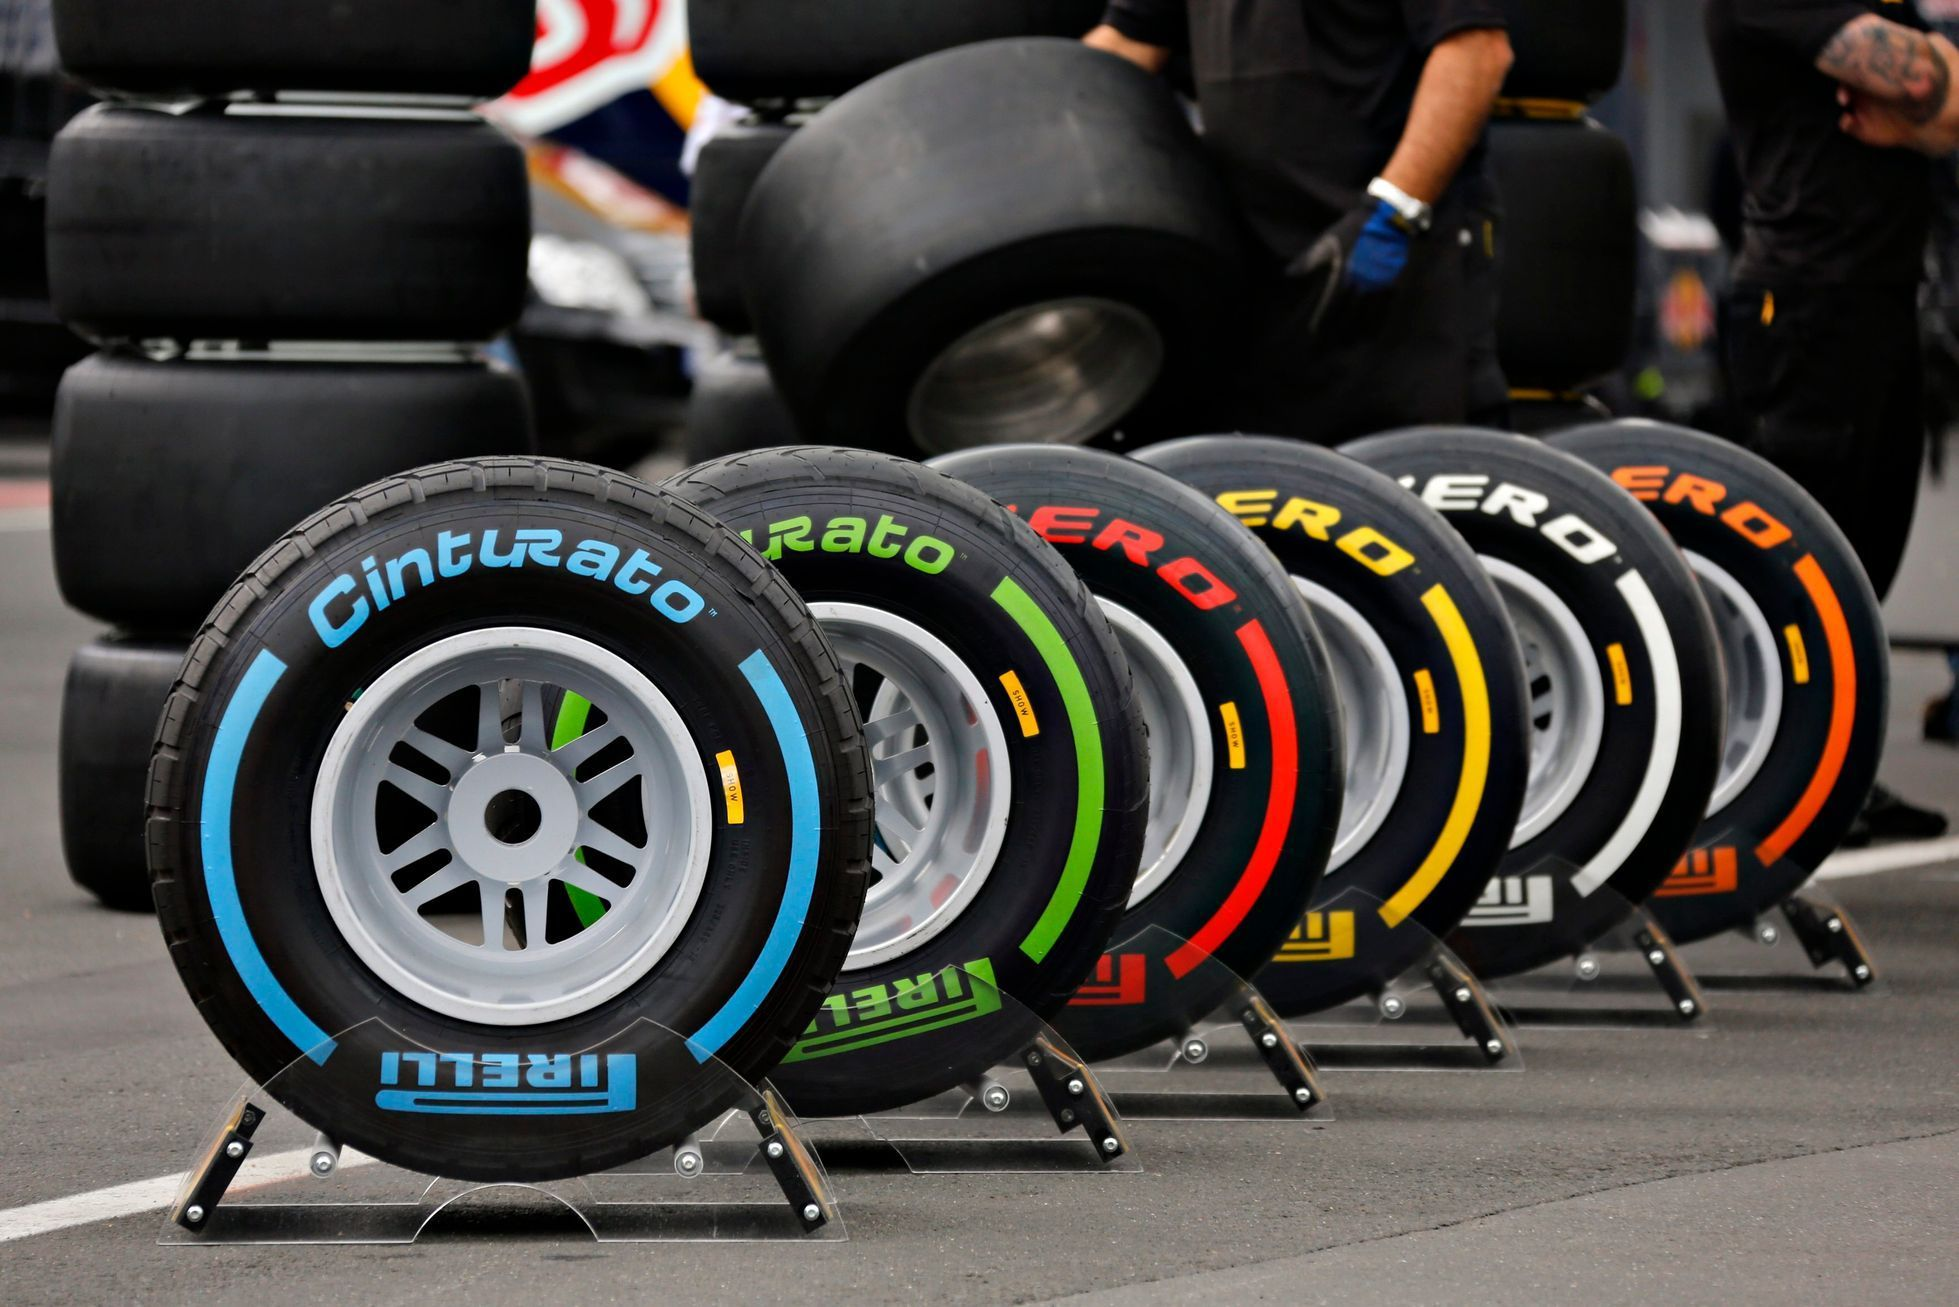 The full range of Formula One tyres of Italian official F1 t